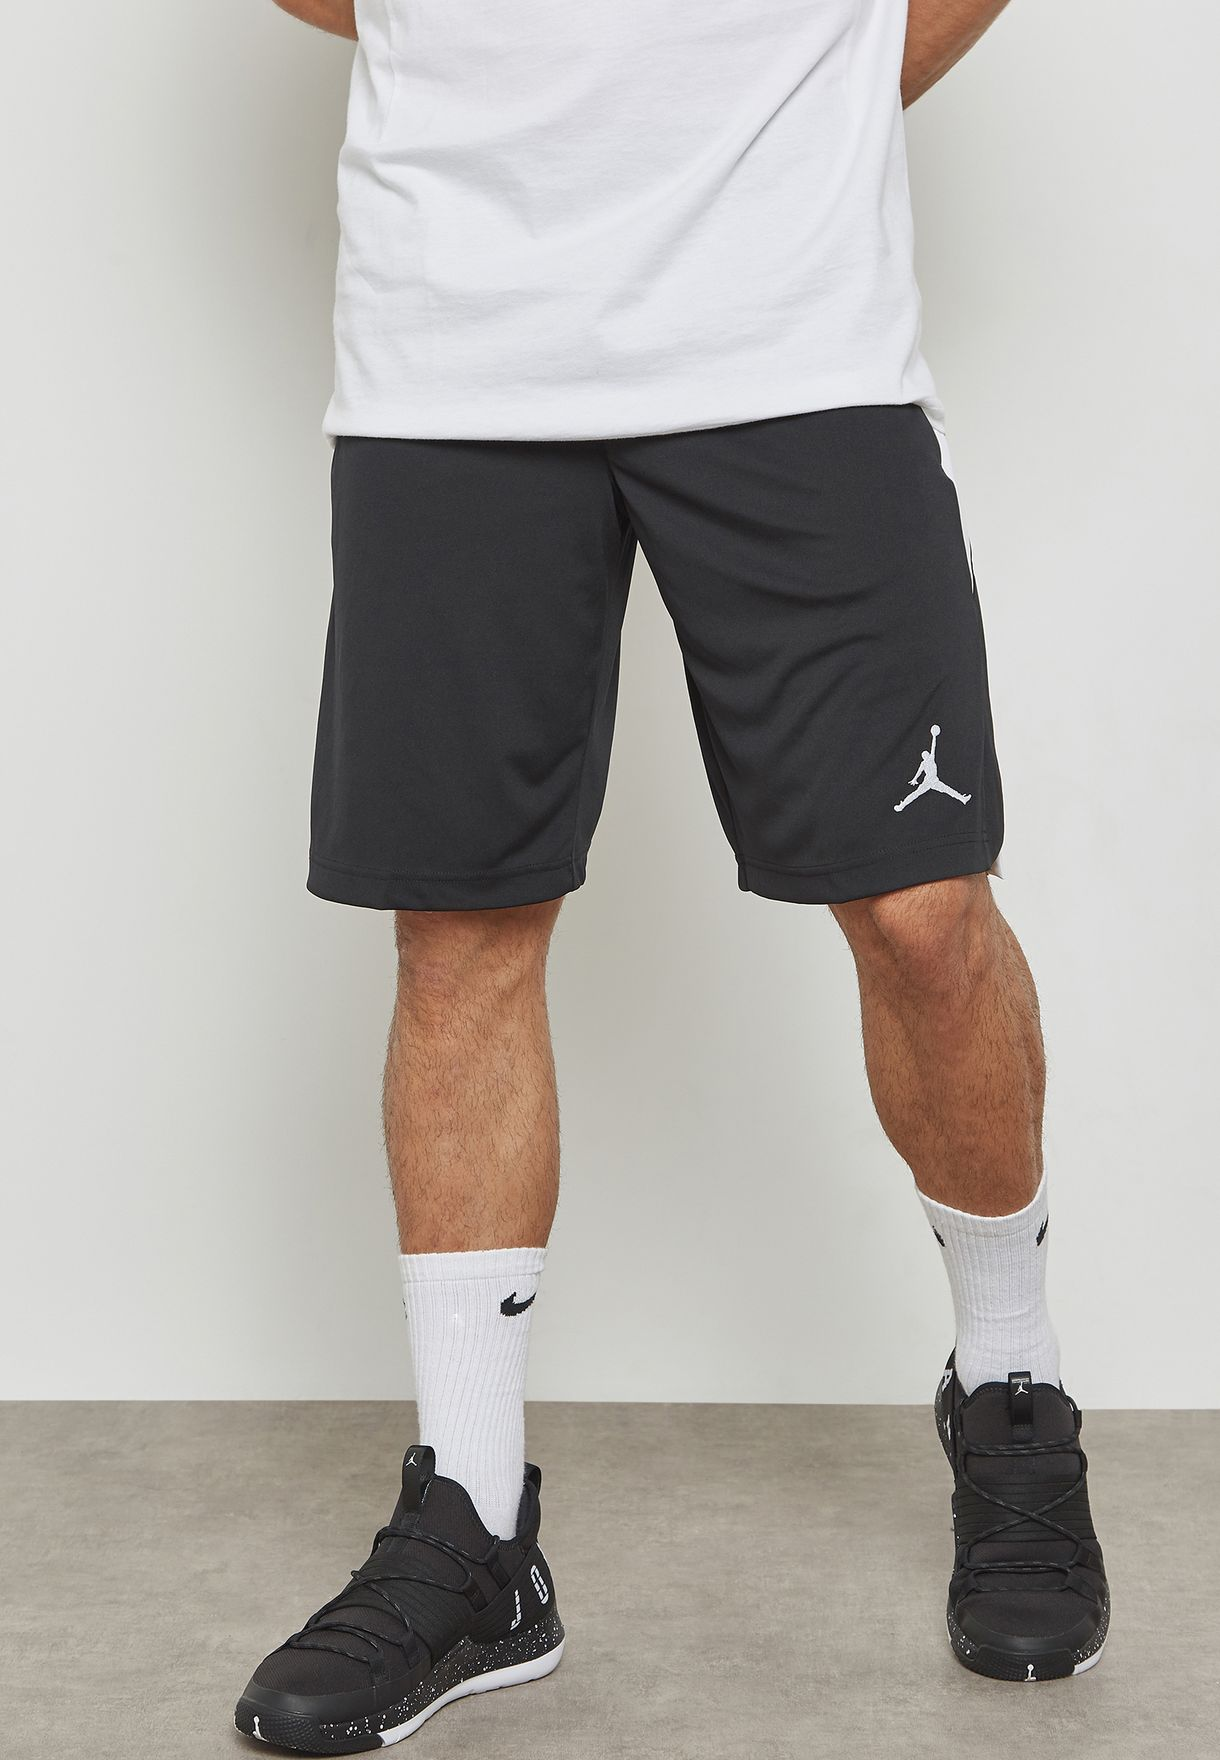 fc97ca68514 Shop Nike black Jordan 23 Alpha Dri-FIT Knit Shorts 905782-013 for ...